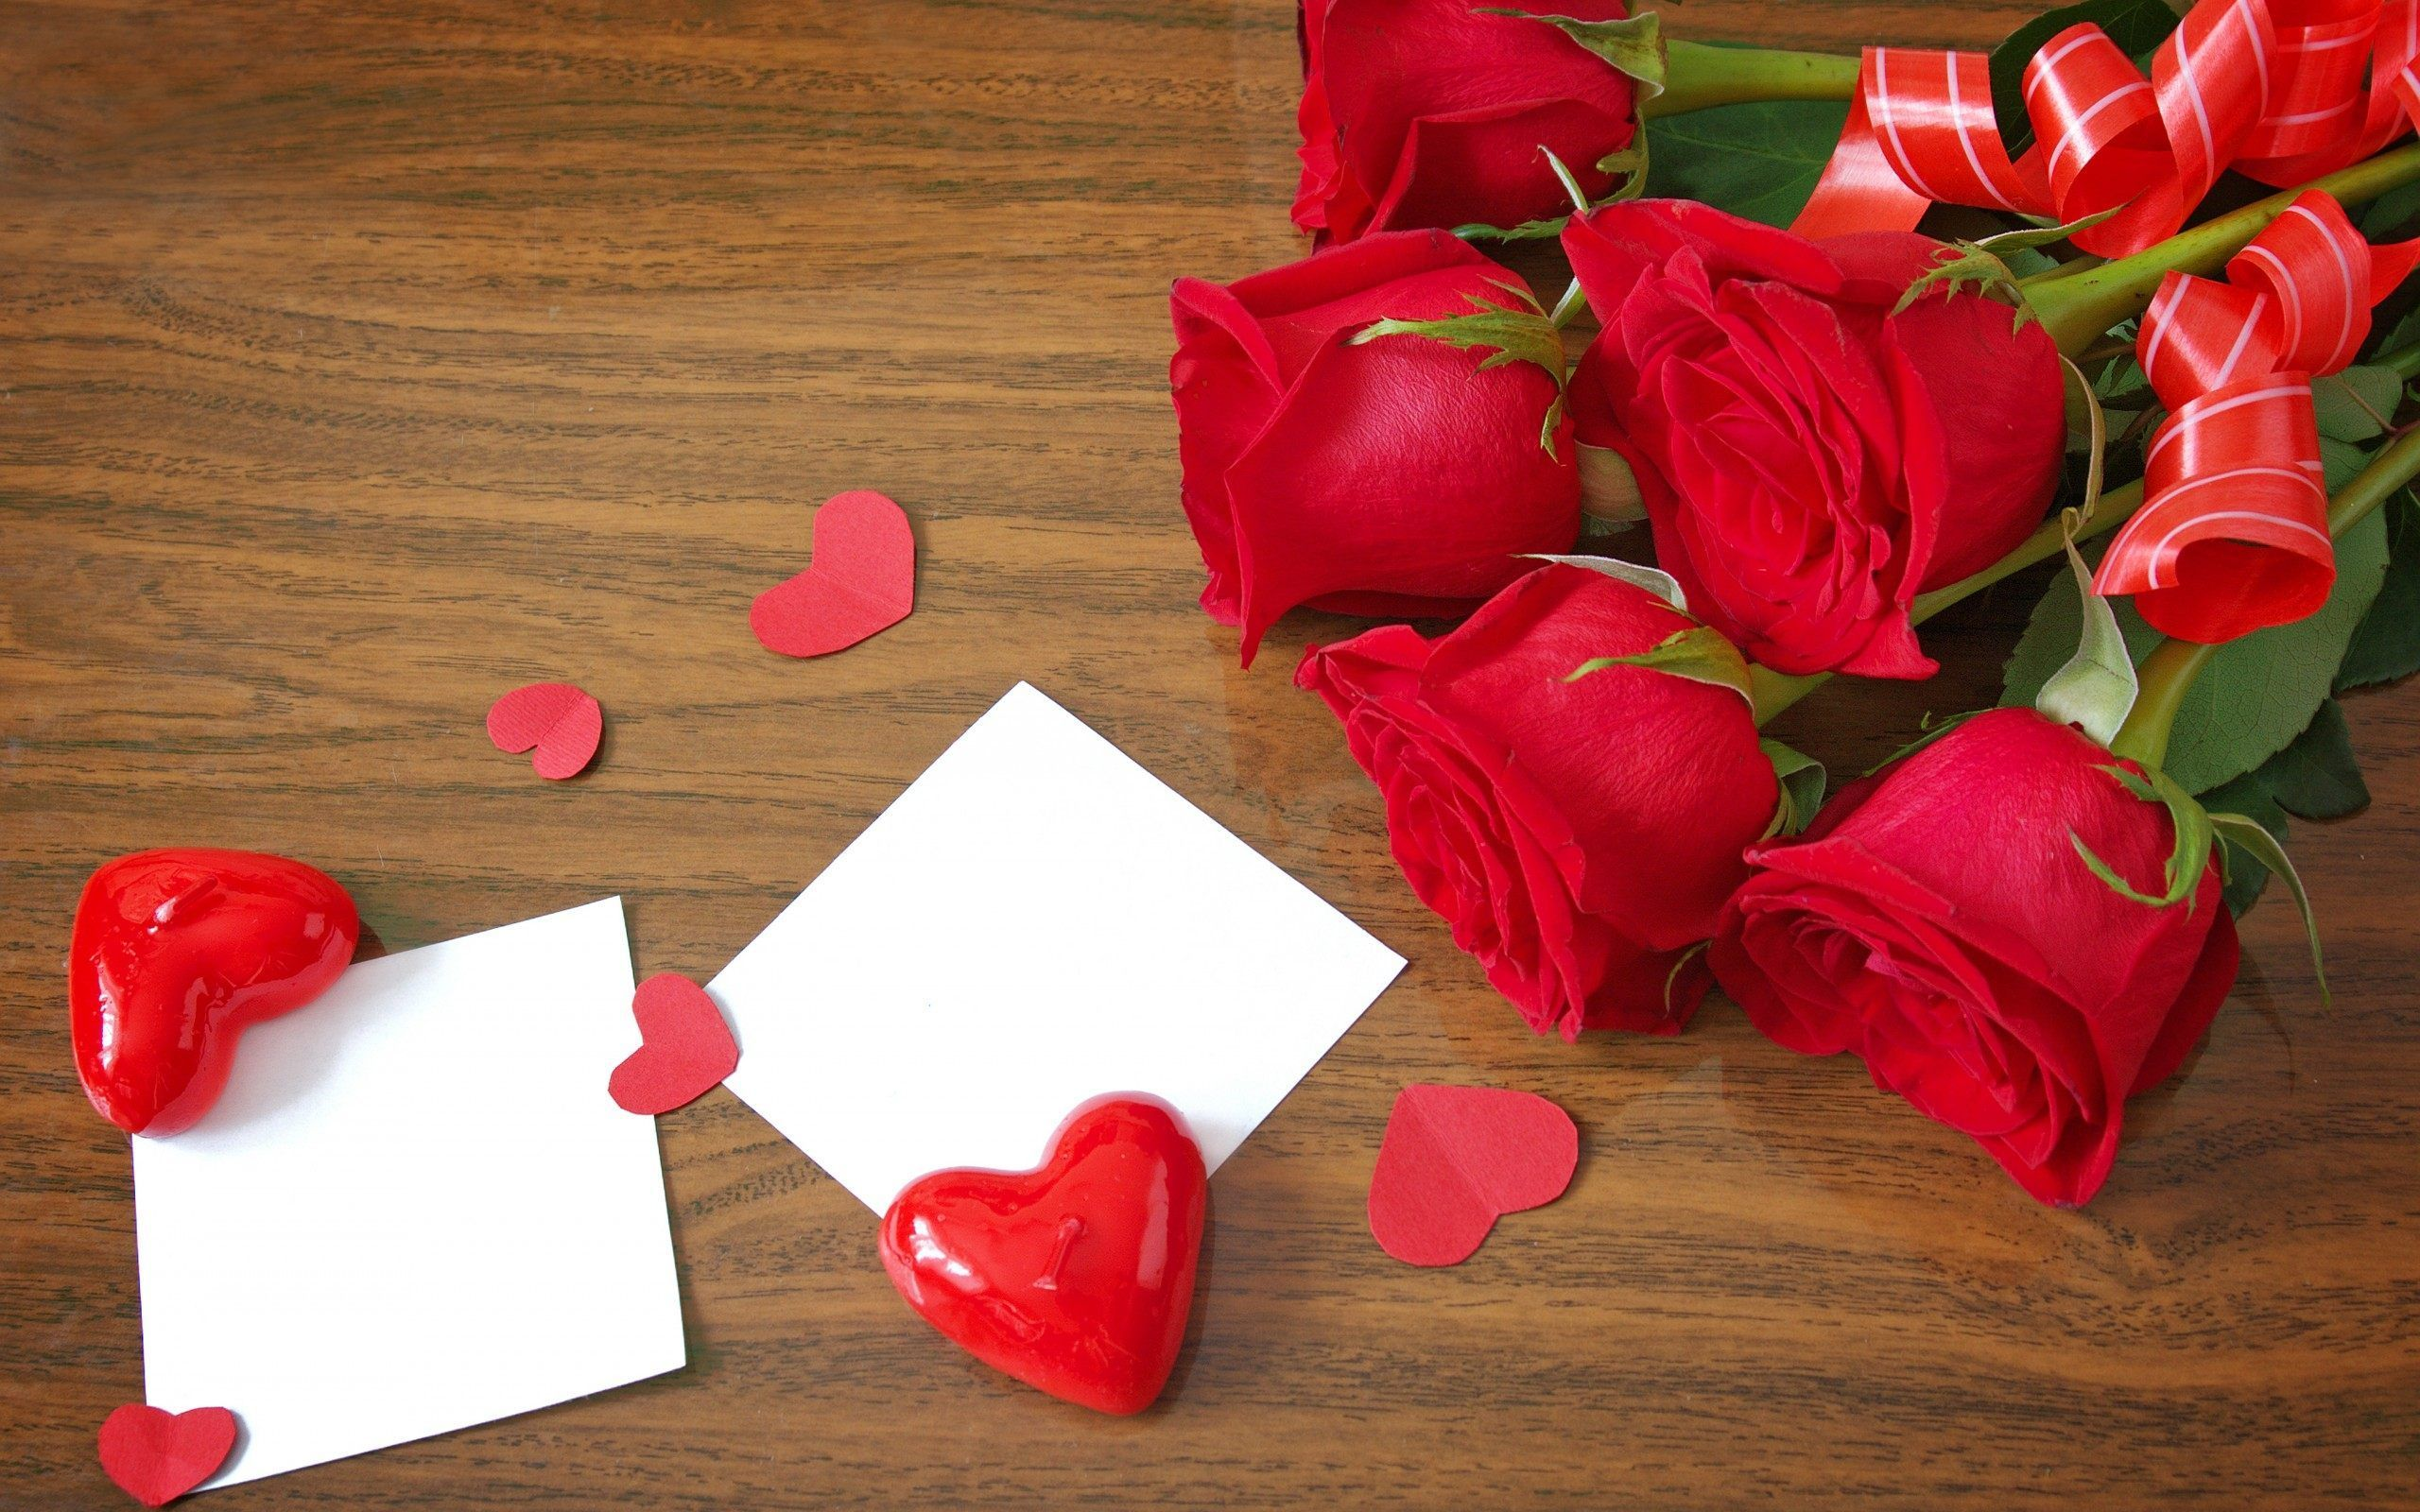 Red Heart and Red Roses Love Wallpapers   HD Desktop Background